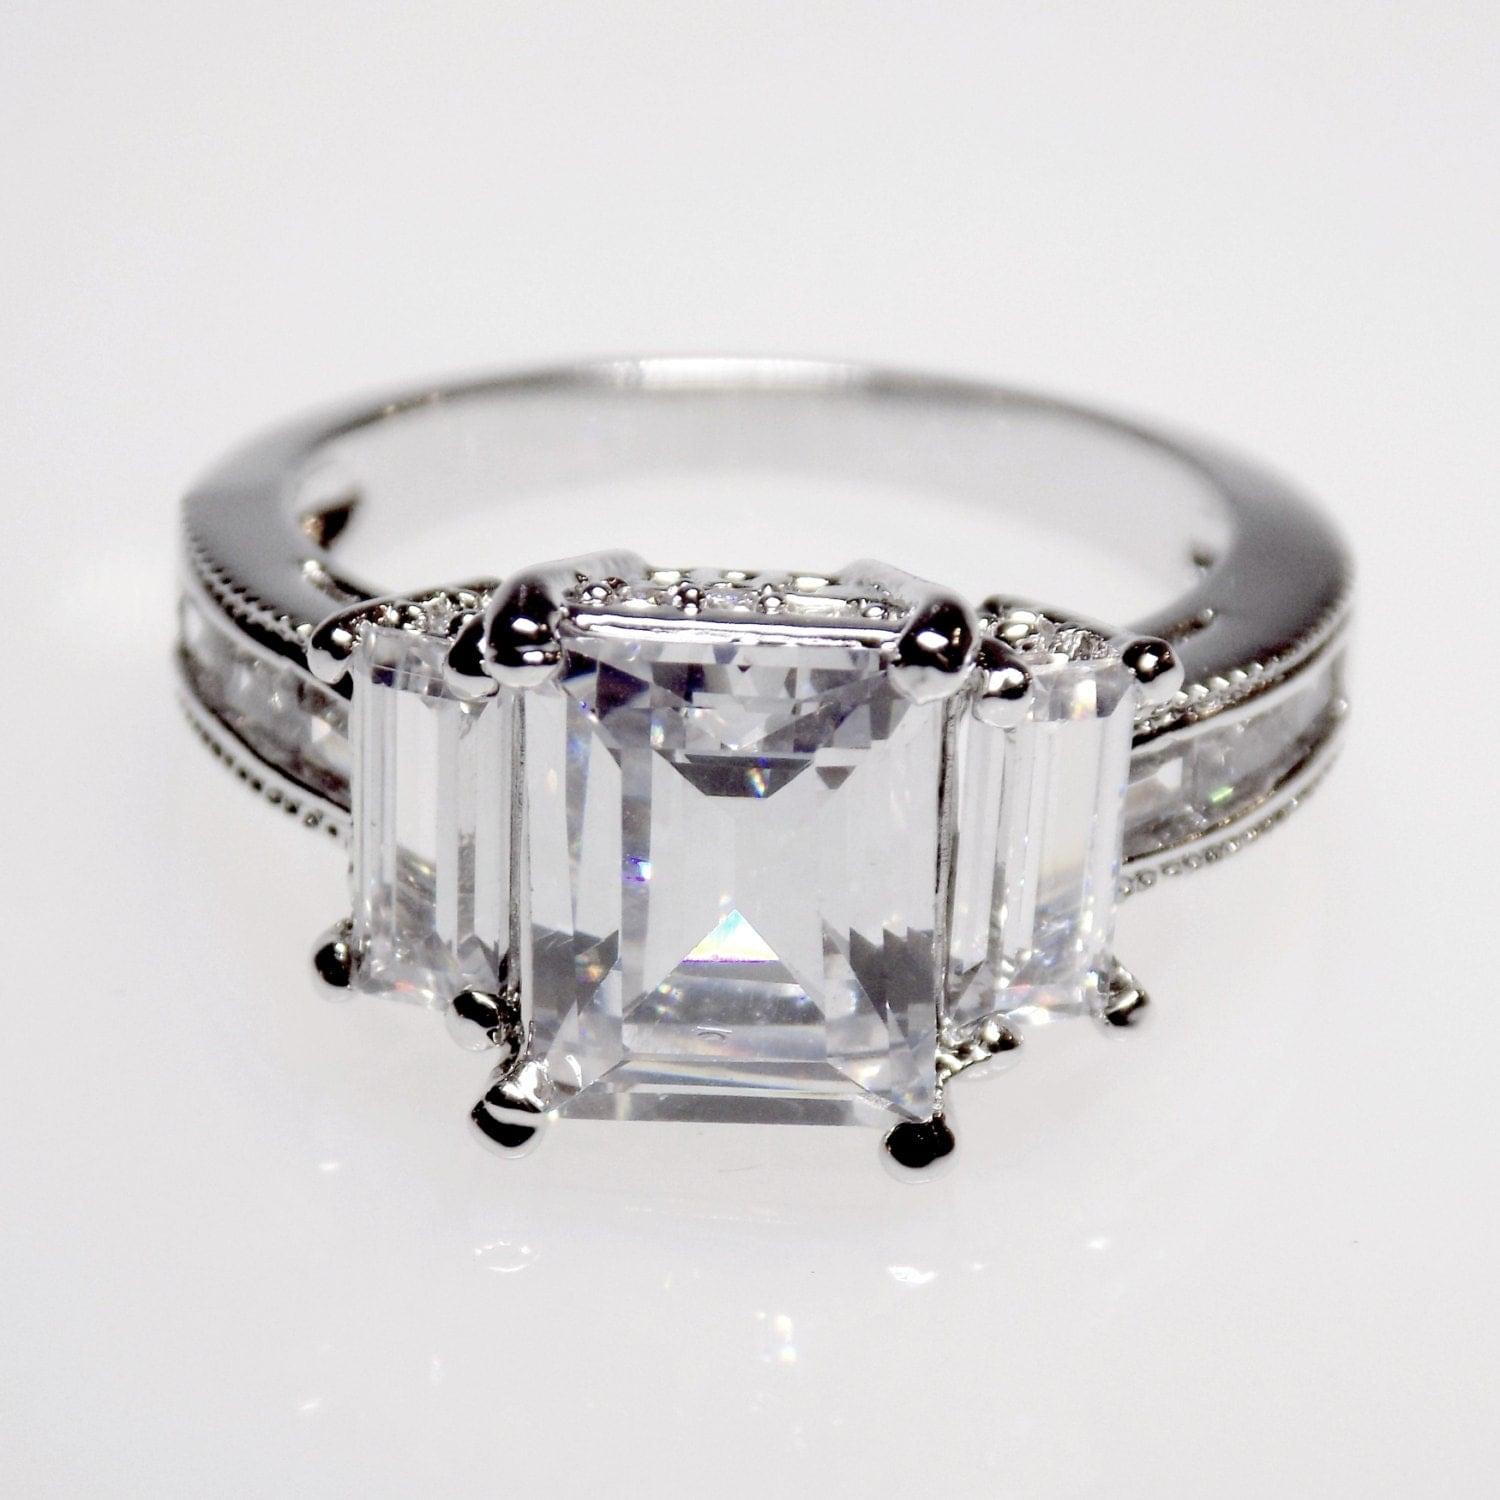 5 1 carat emerald cut engagement ring wedding ring anniversary